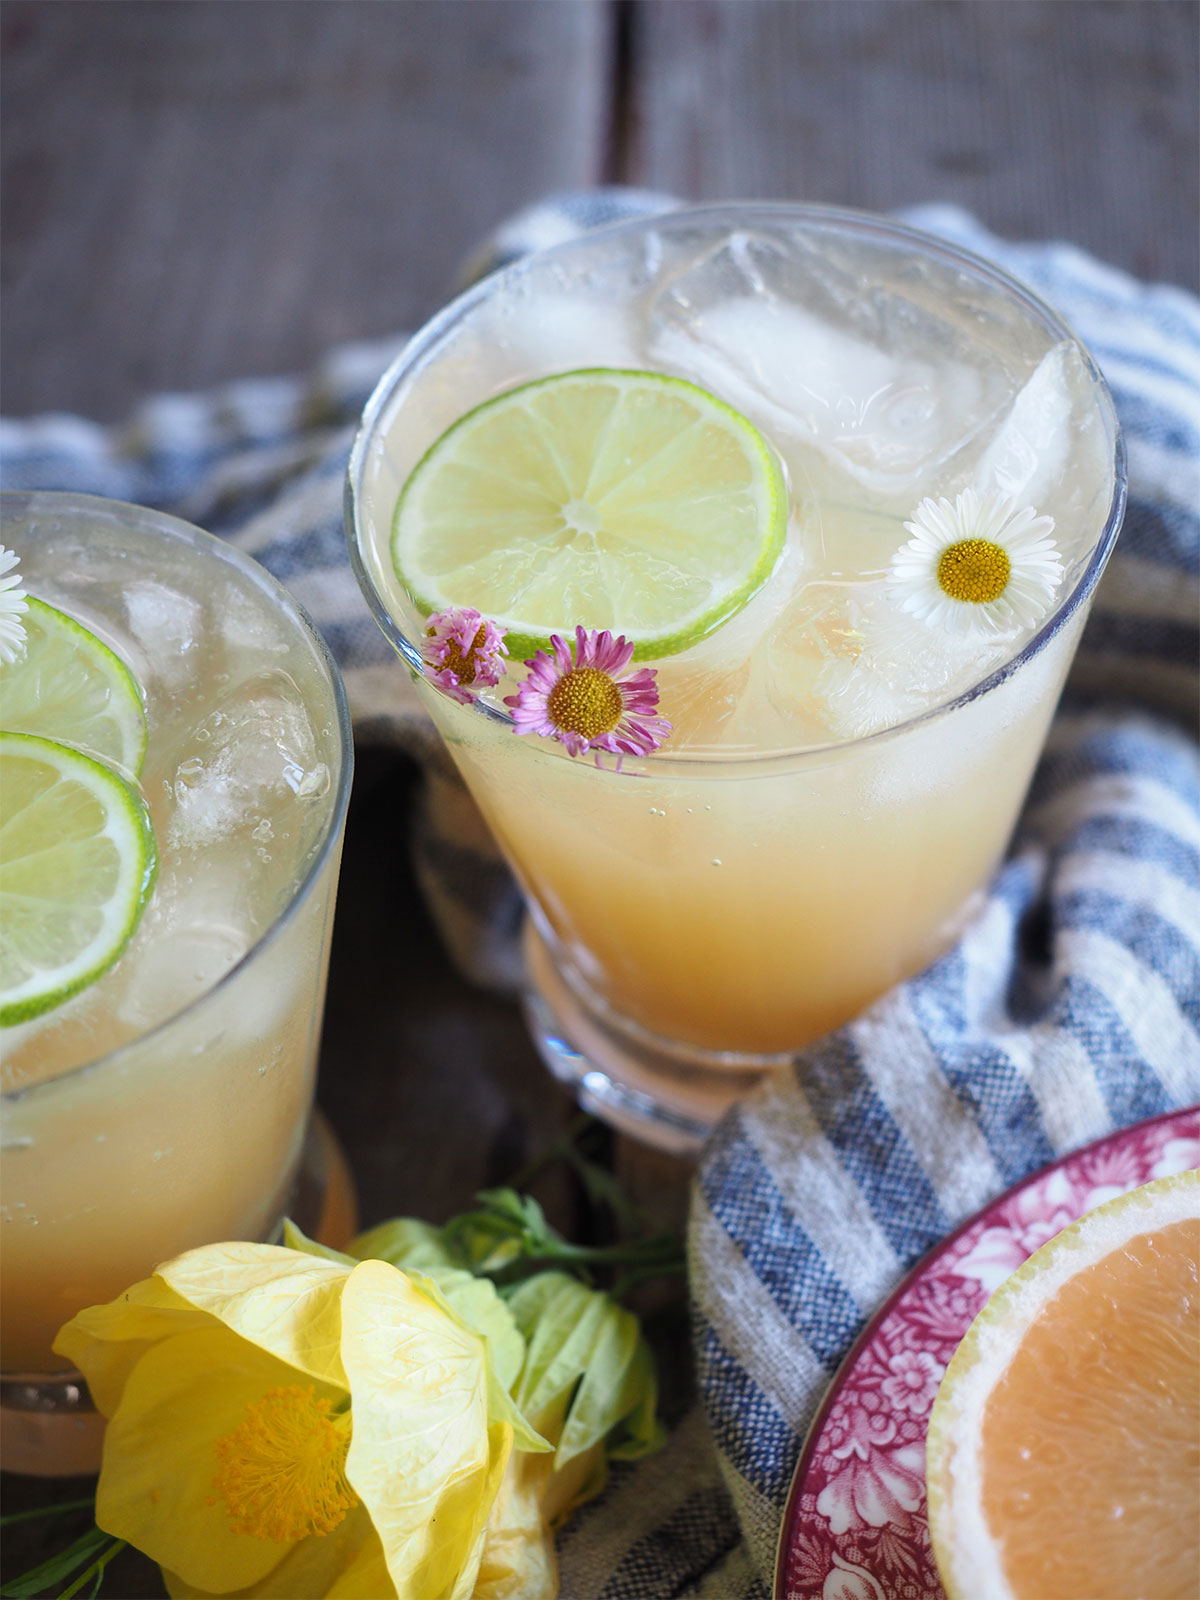 Chamomile-infused tequila turns this Paloma into a whole new cocktail. It's a super refreshing spring or summer treat made even better with Pamplemousse La Croix!